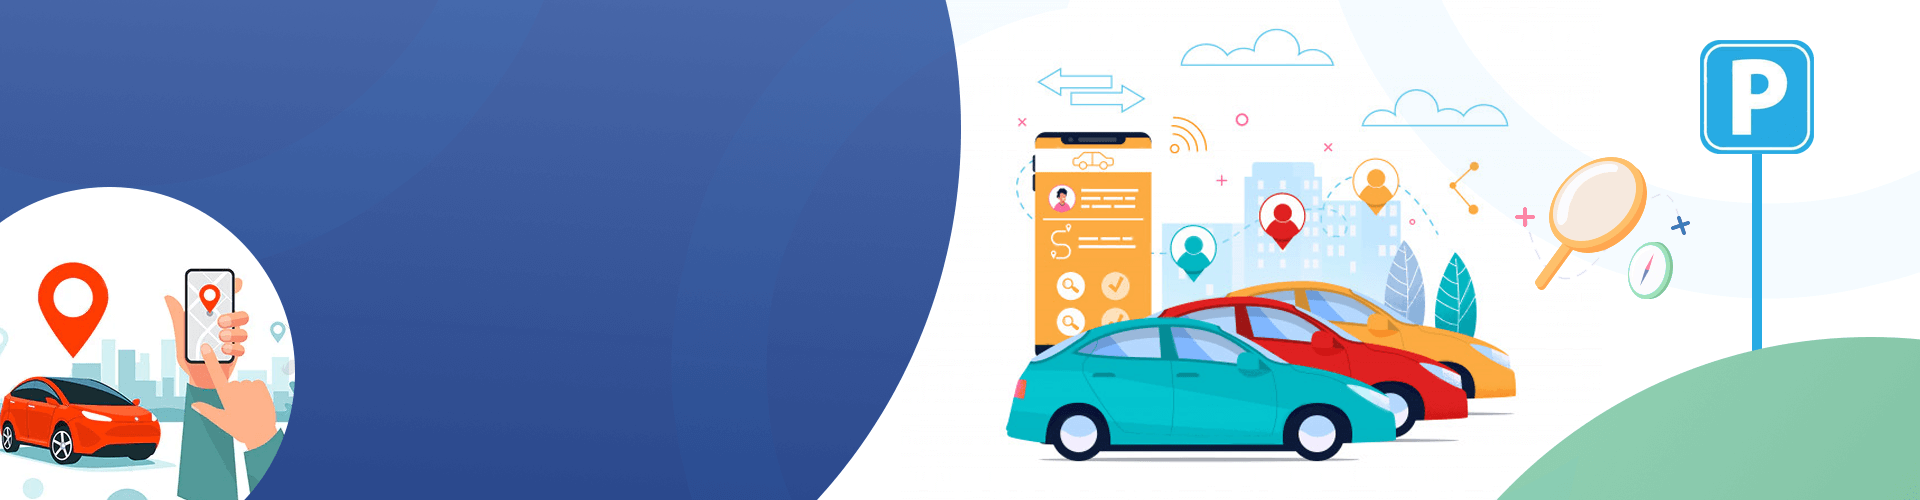 Car_Parking_app_development_Smart_Solution_to_manage_your_Car_parking Featured Image